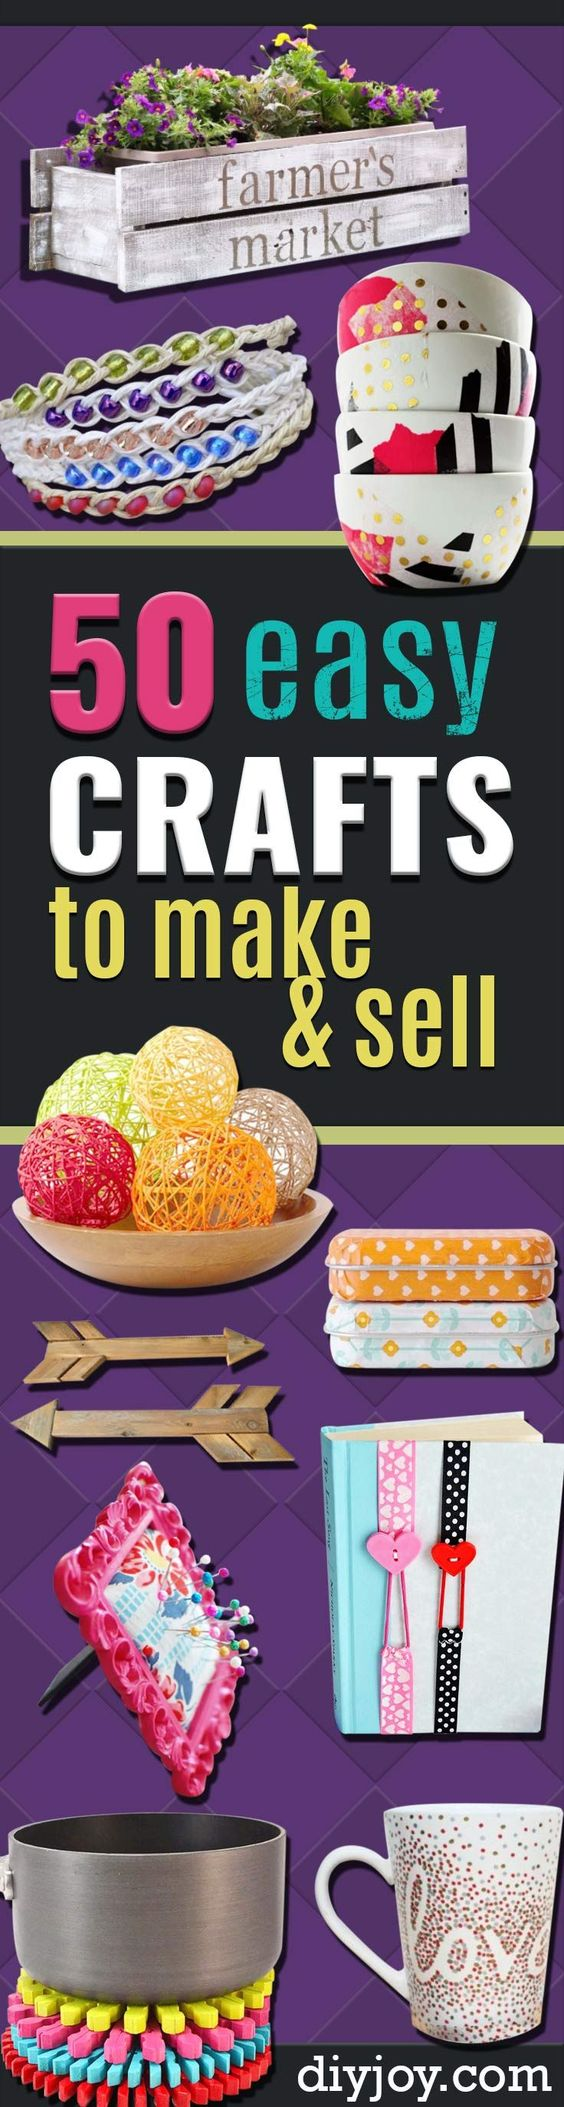 50 easy crafts to make and sell homemade craft fairs